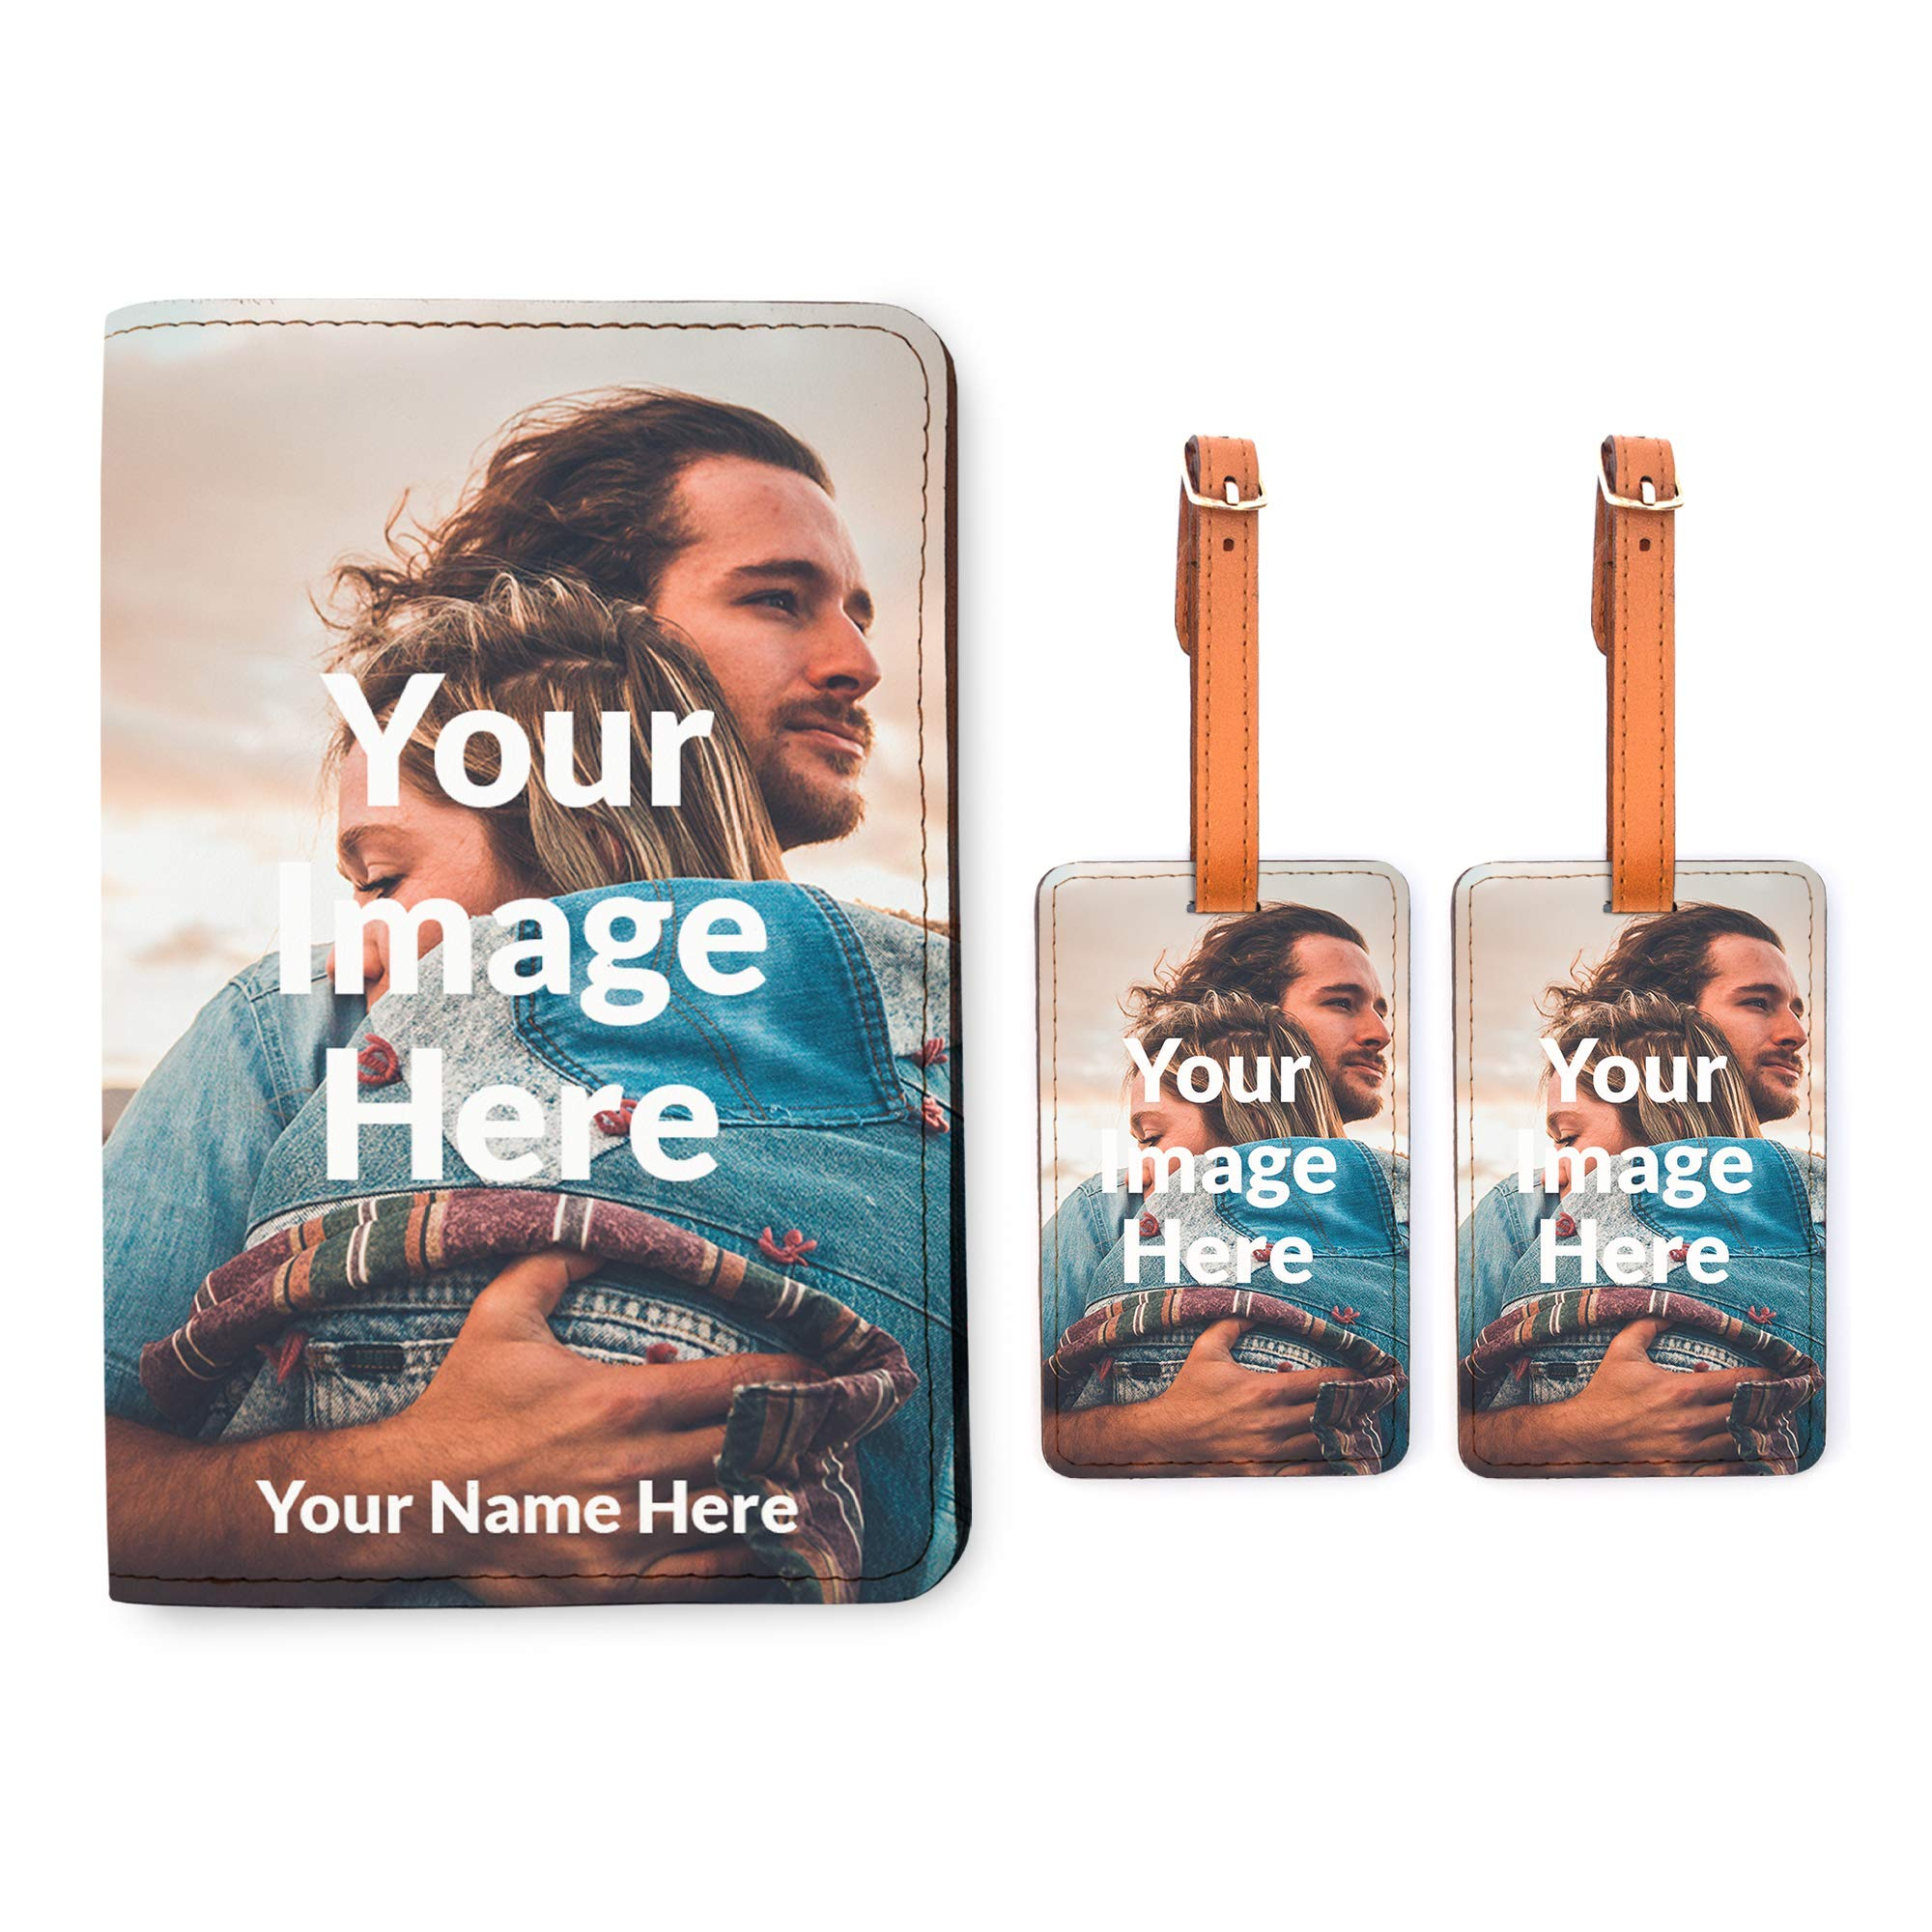 Personalized Passport Holder 2 Matching Luggage Tag Set - Your Image Here by With Love From Julie